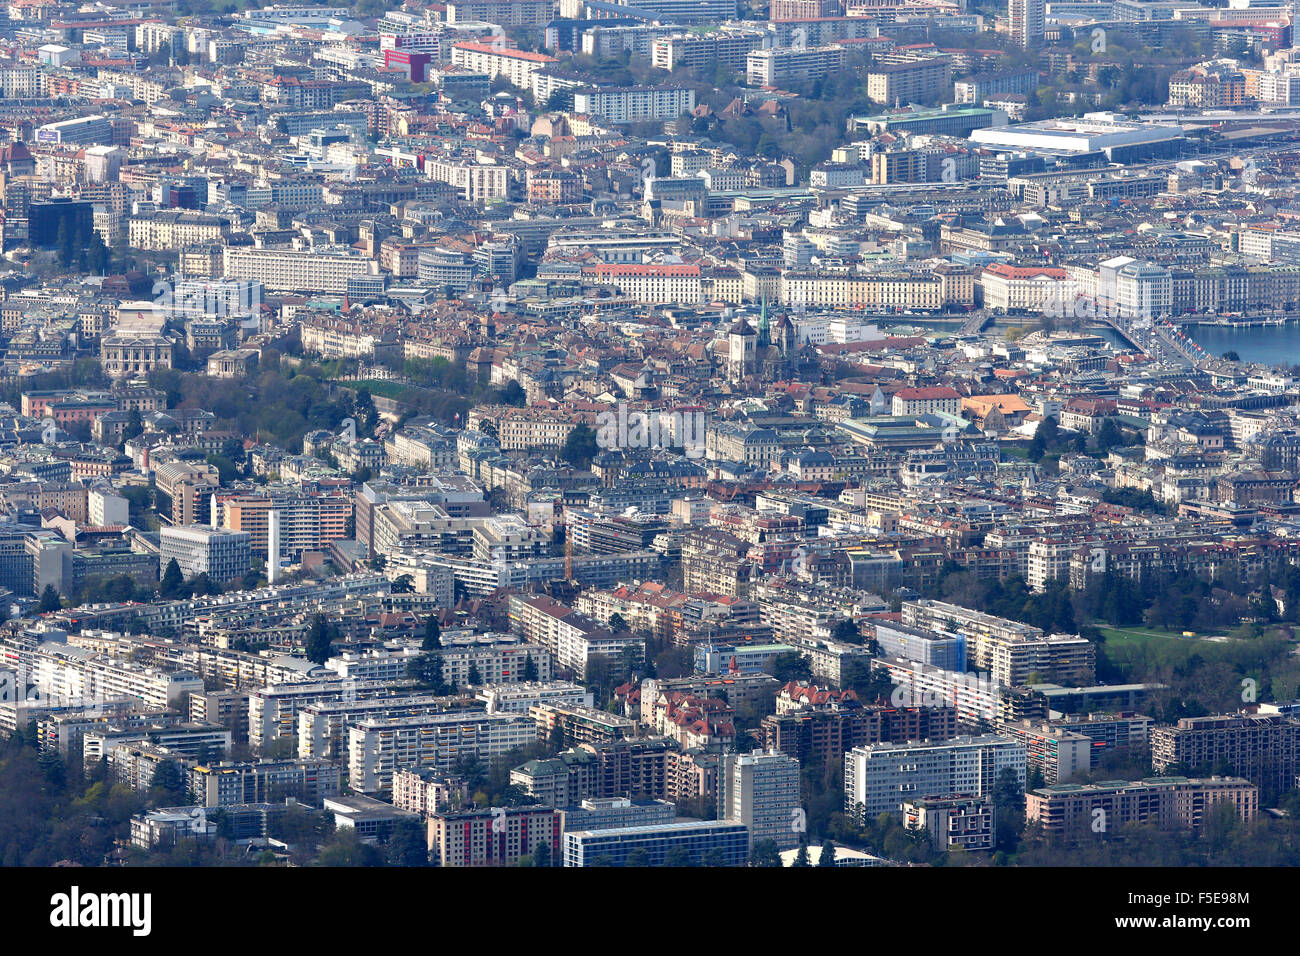 Downtown, Geneva, Switzerland, Europe - Stock Image